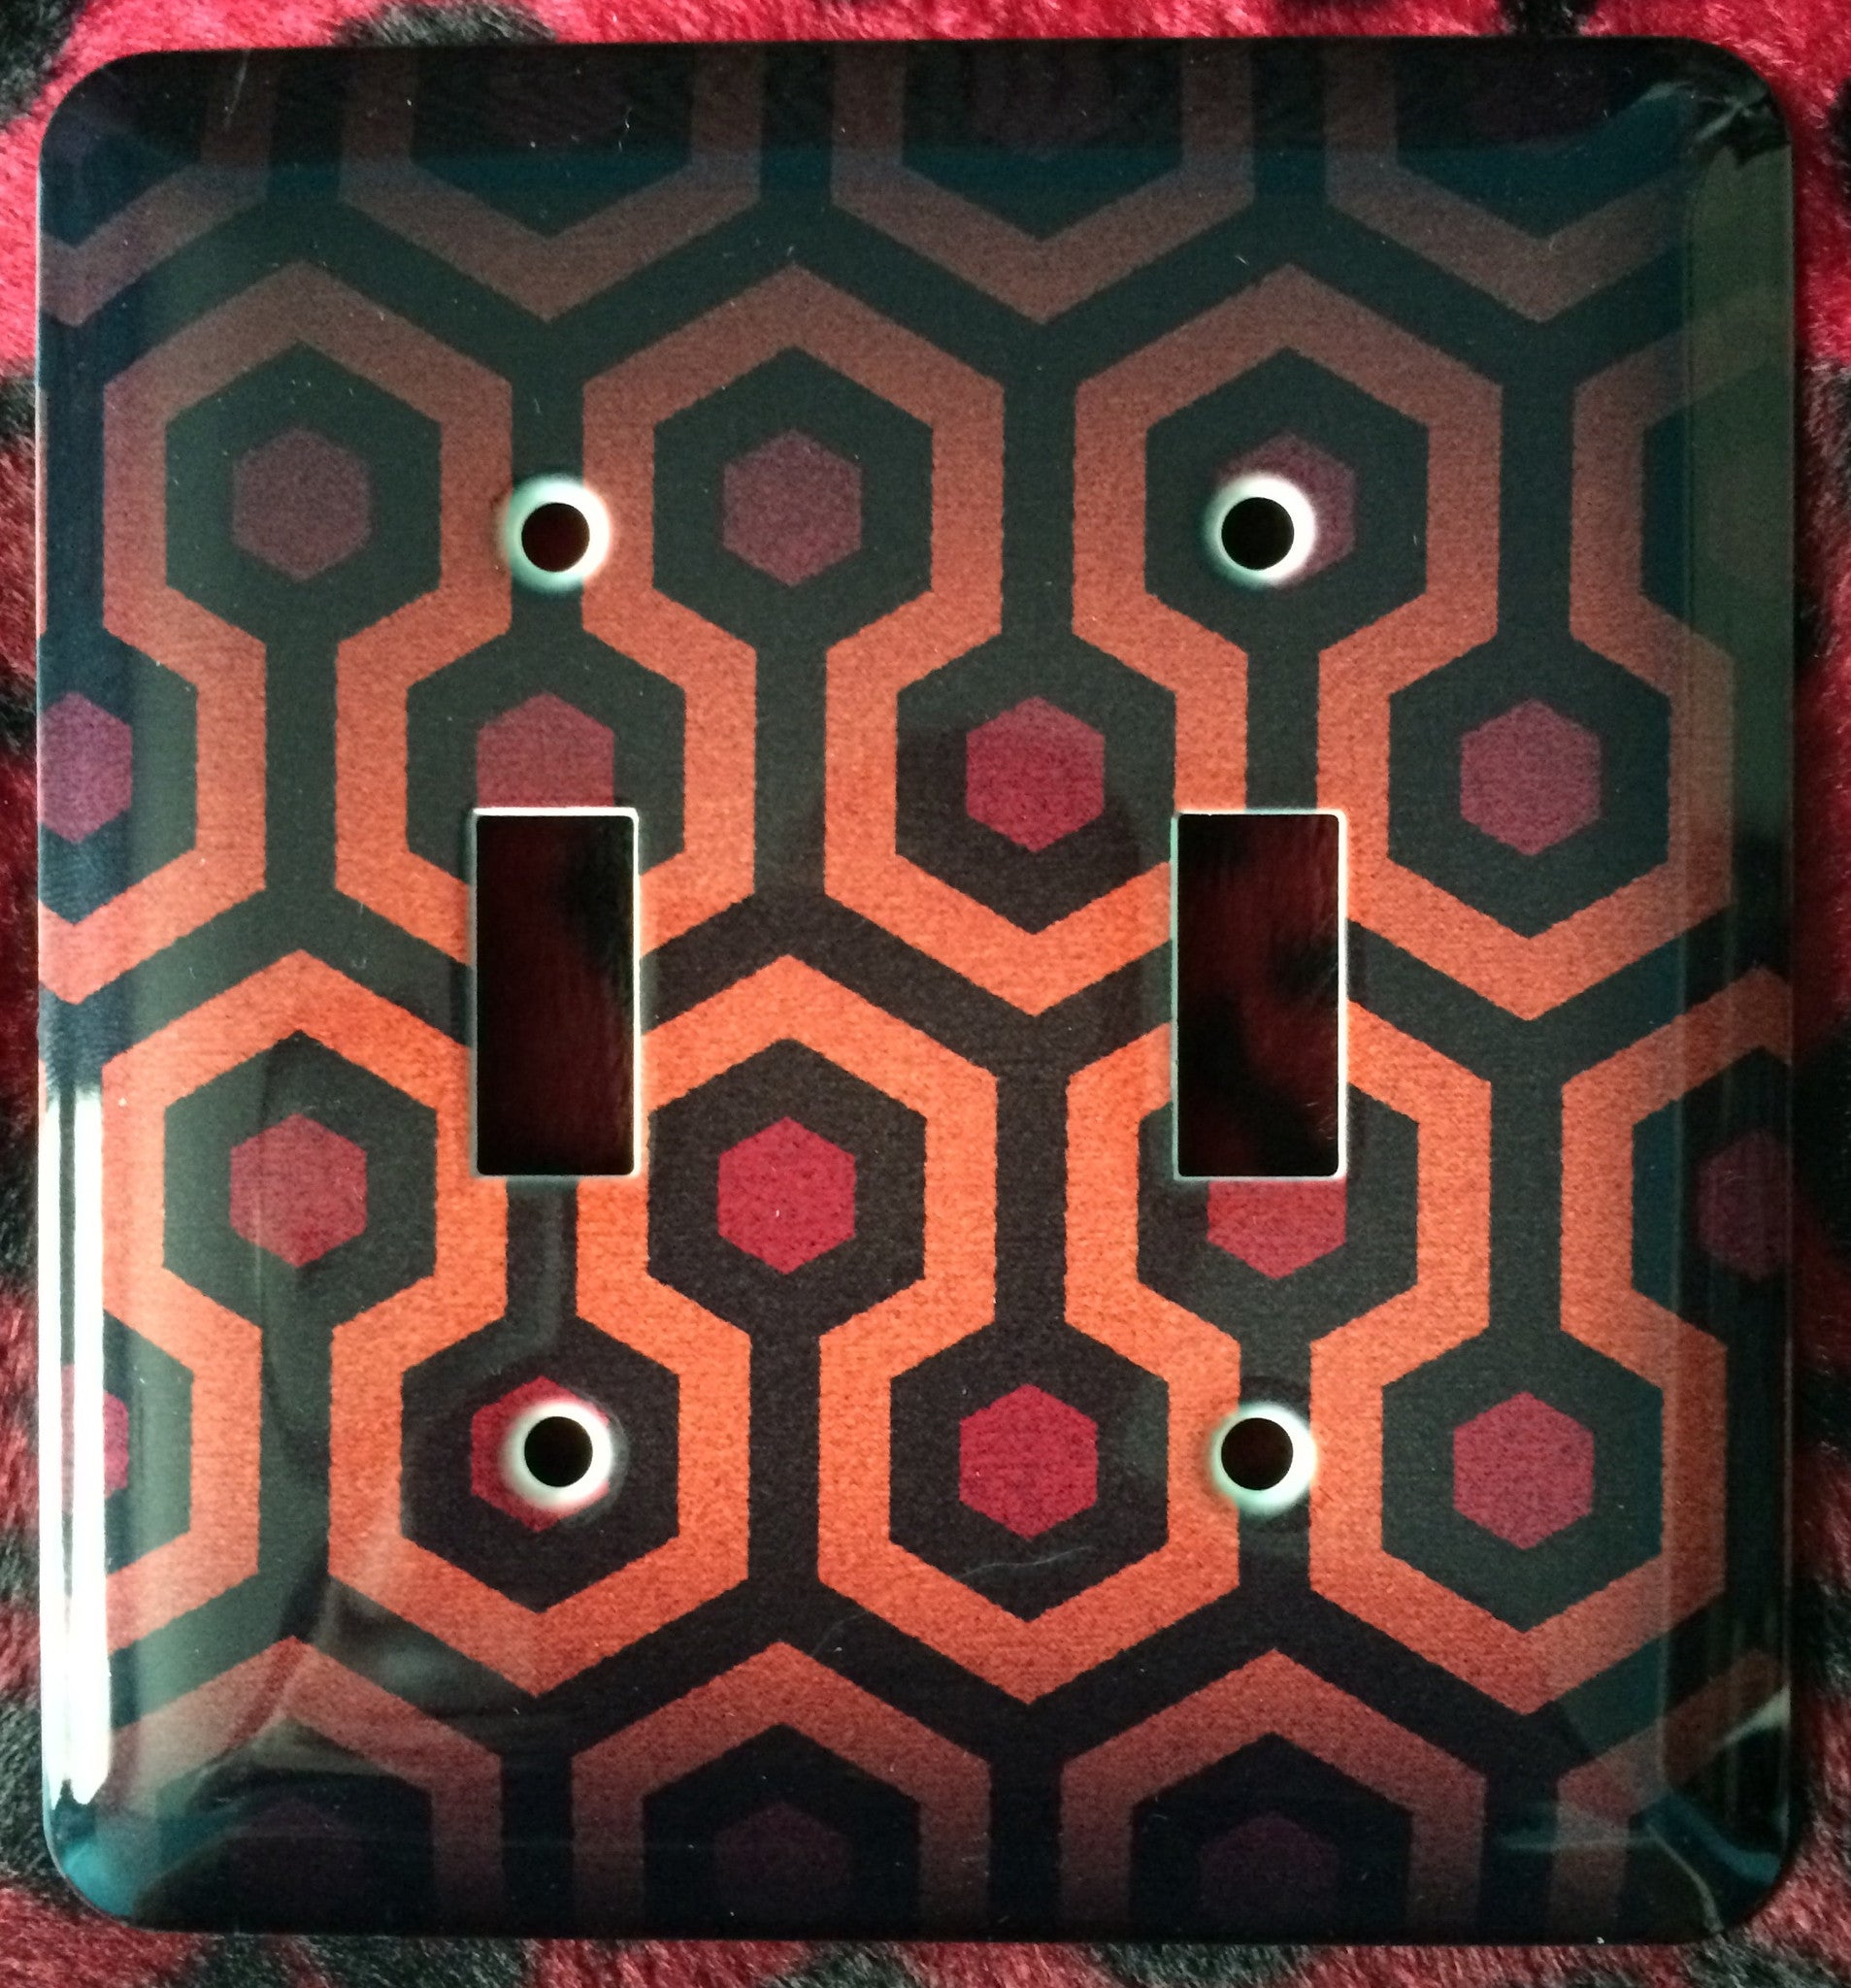 The Shining Overlook Hotel Double Light Switch Cover